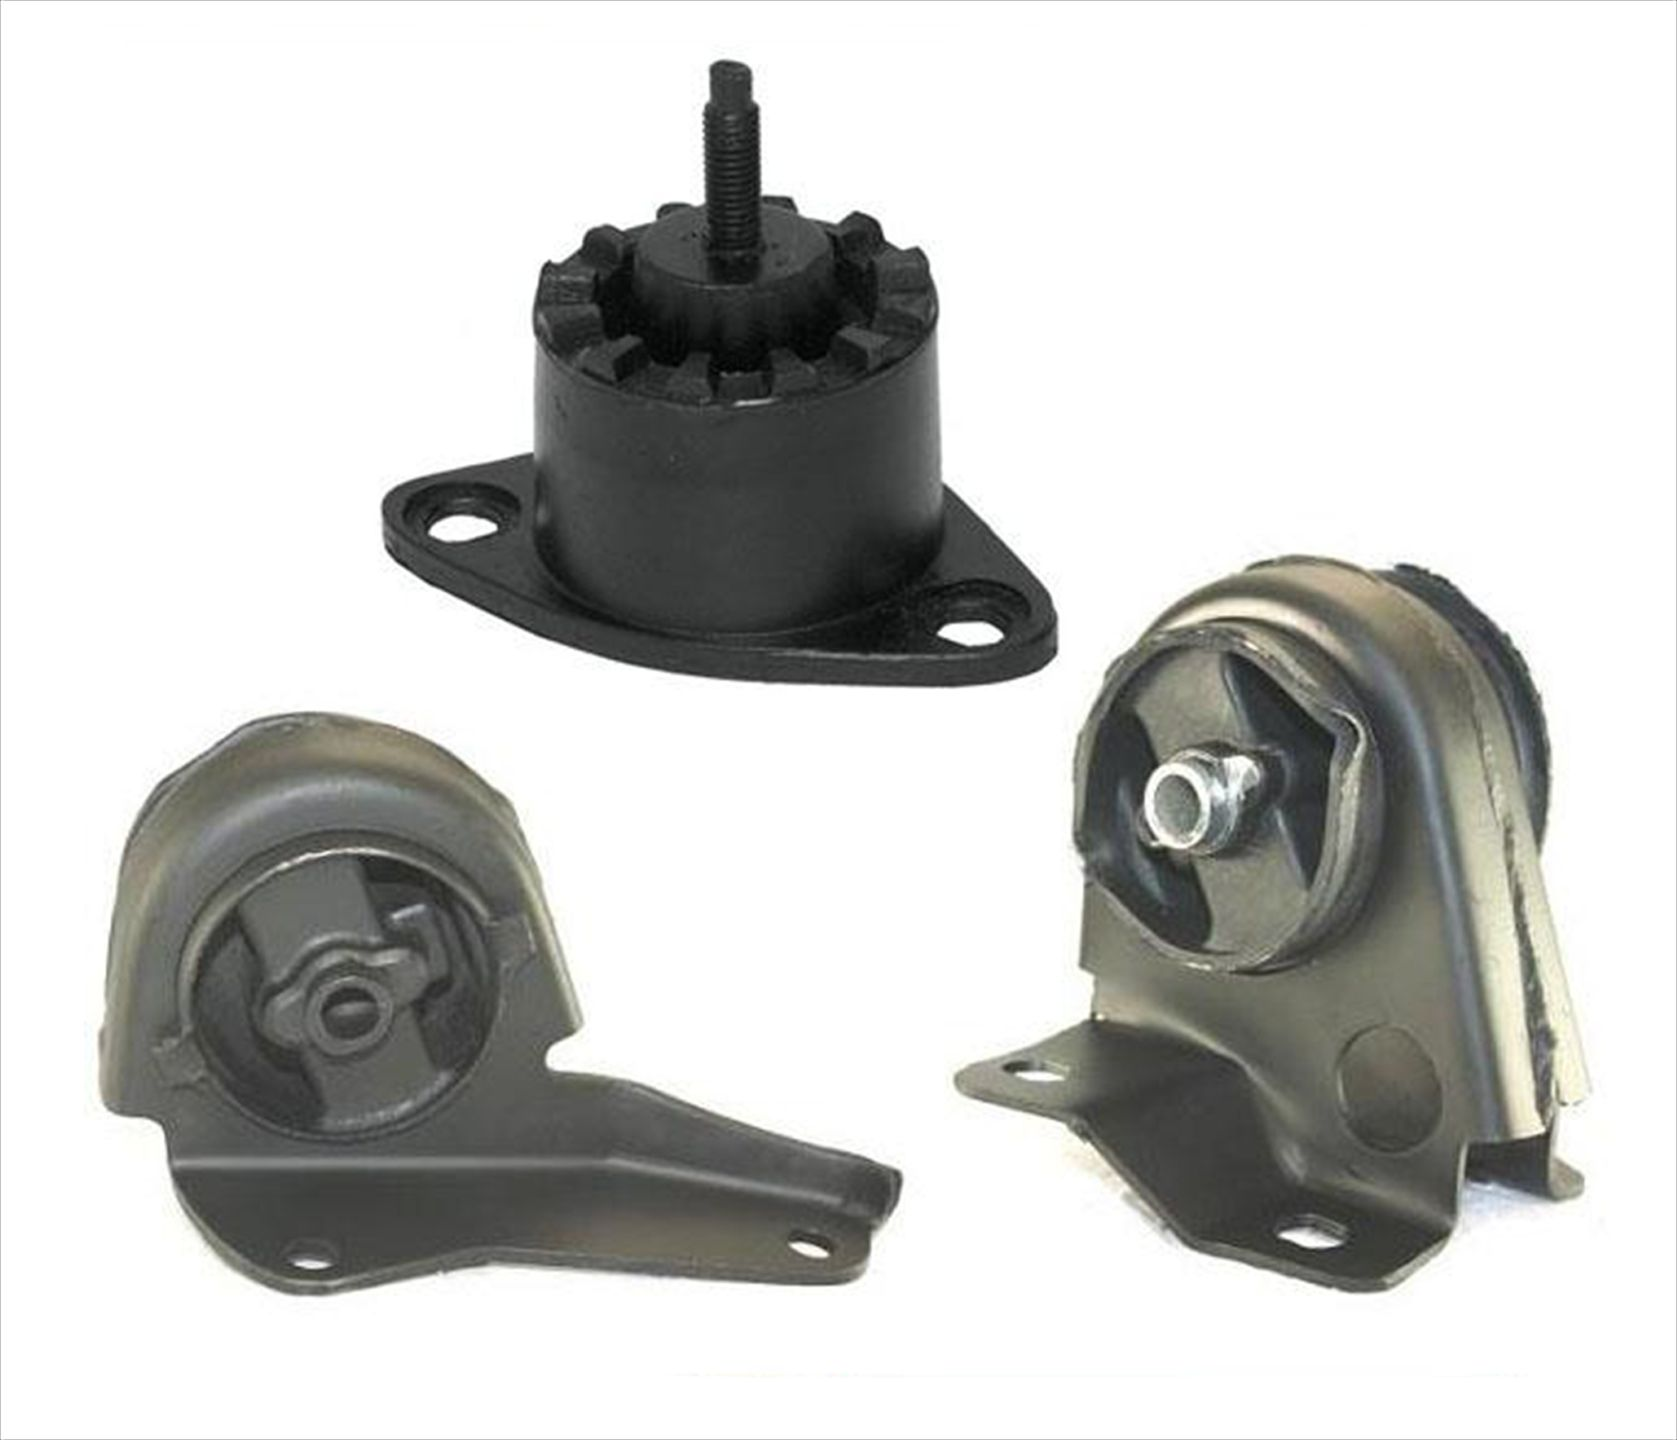 New Engine Motor Mounts Automatic Transmission S10 Sonoma S15 2.2L 3pc Kit 94-03